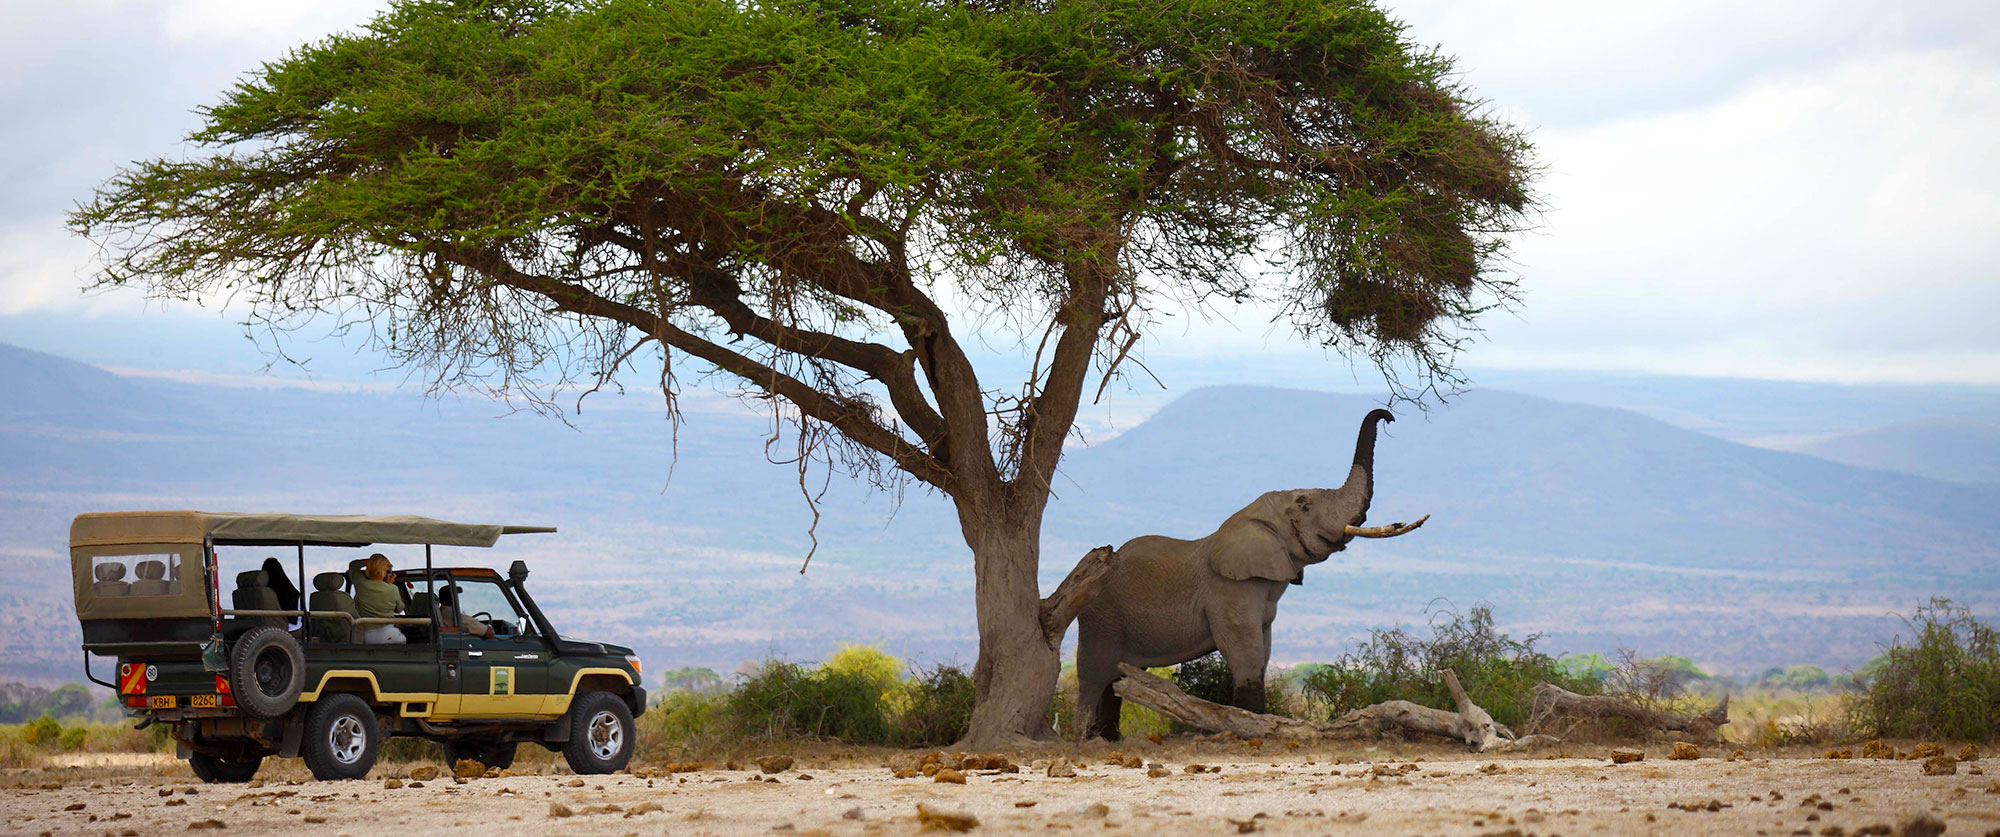 Kenya and Seychelles Package - Tortilis Camp Safari